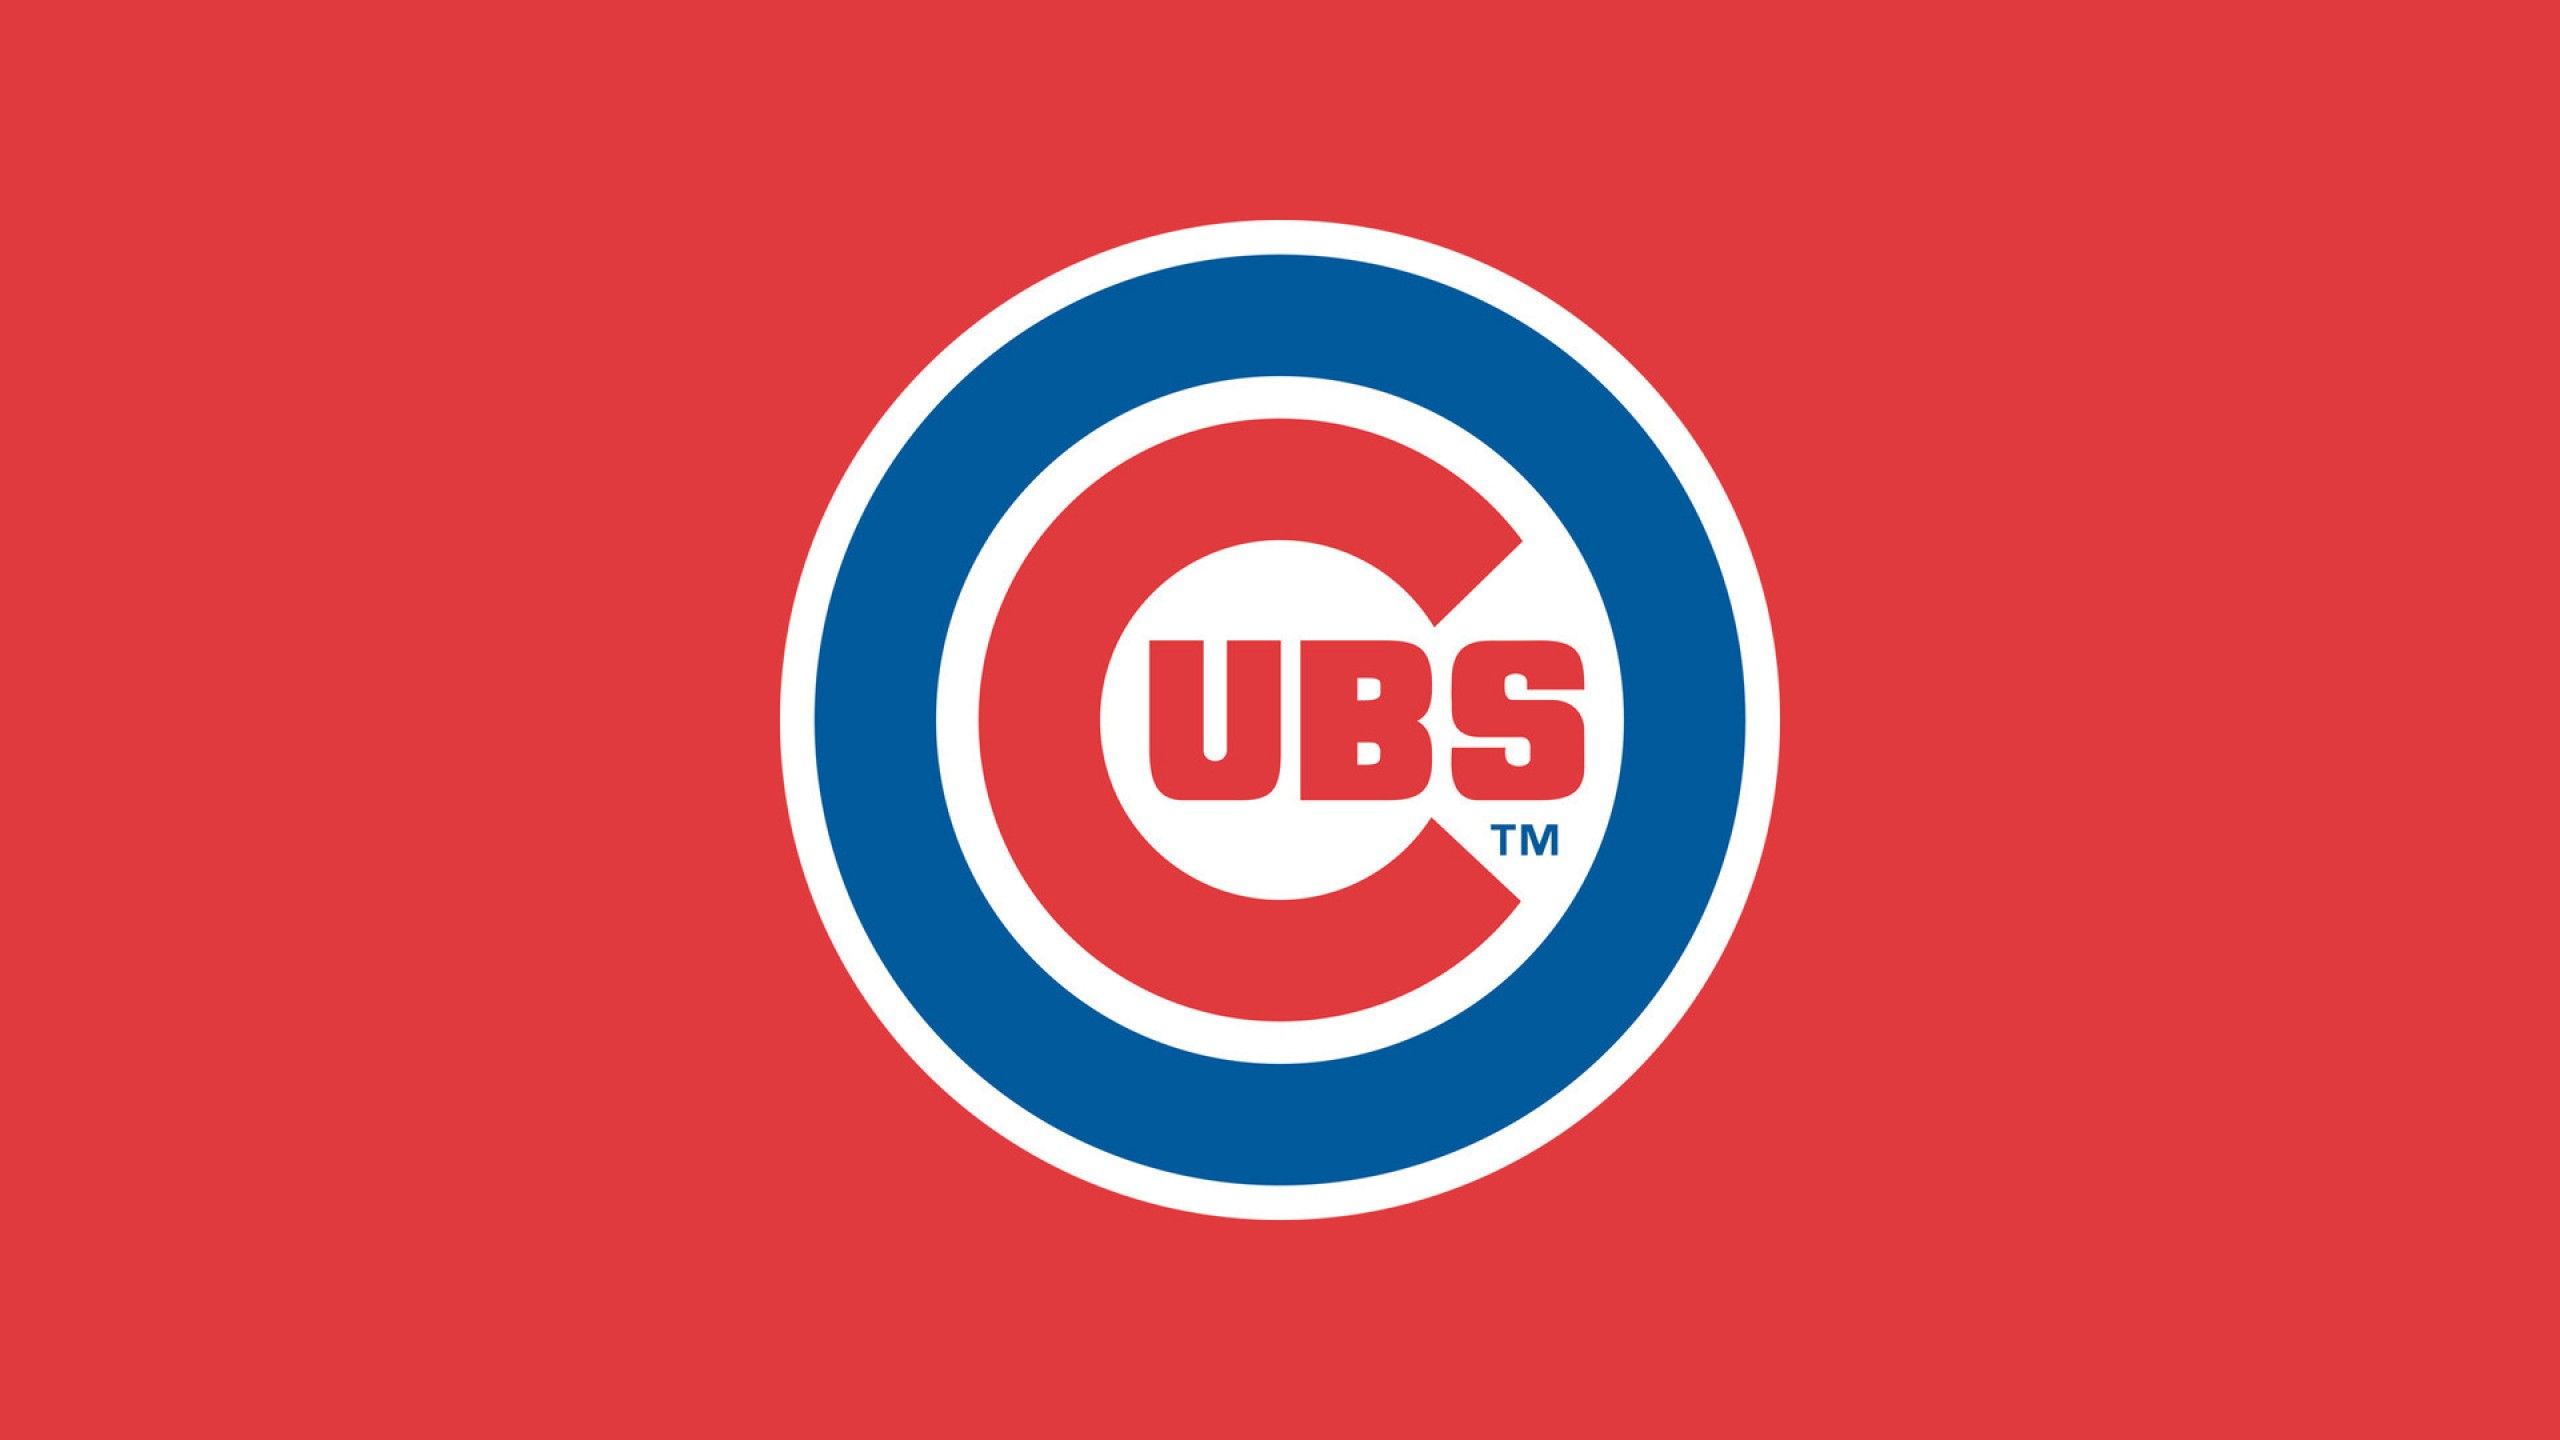 The Official schedule of the Cubs including home and away schedule and promotions